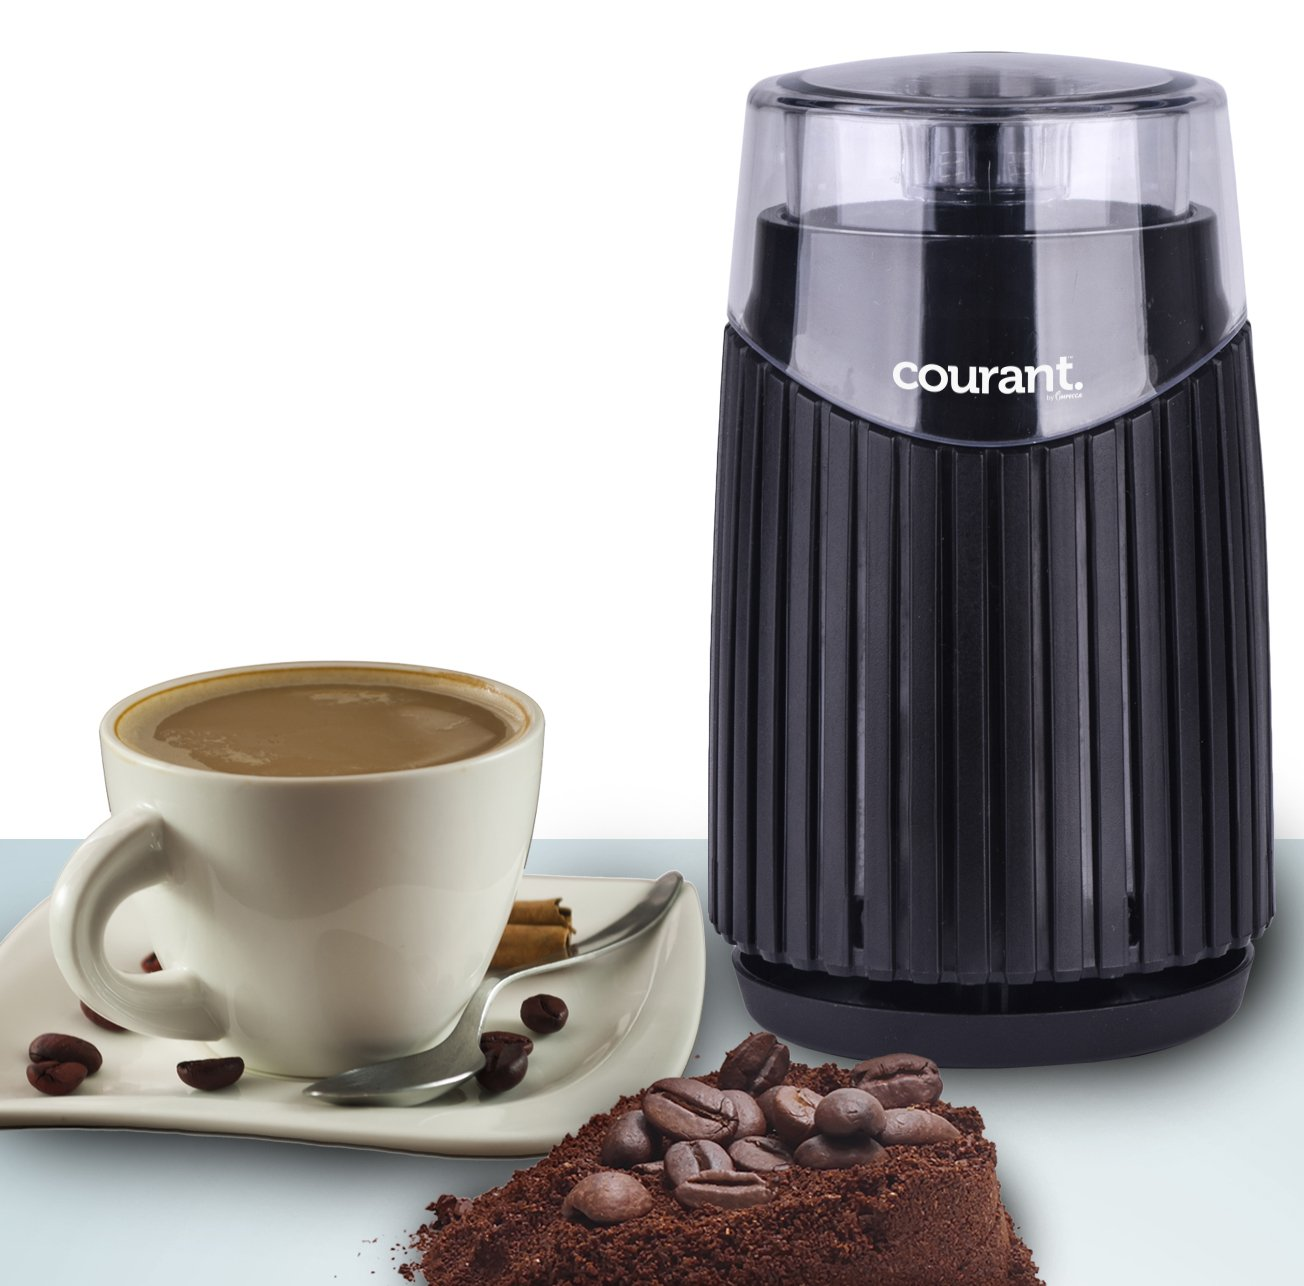 Courant Electric Coffee Grinder, Stainless steel bowl and blades Grinds Coffee, Beans & Spices, Black by Courant